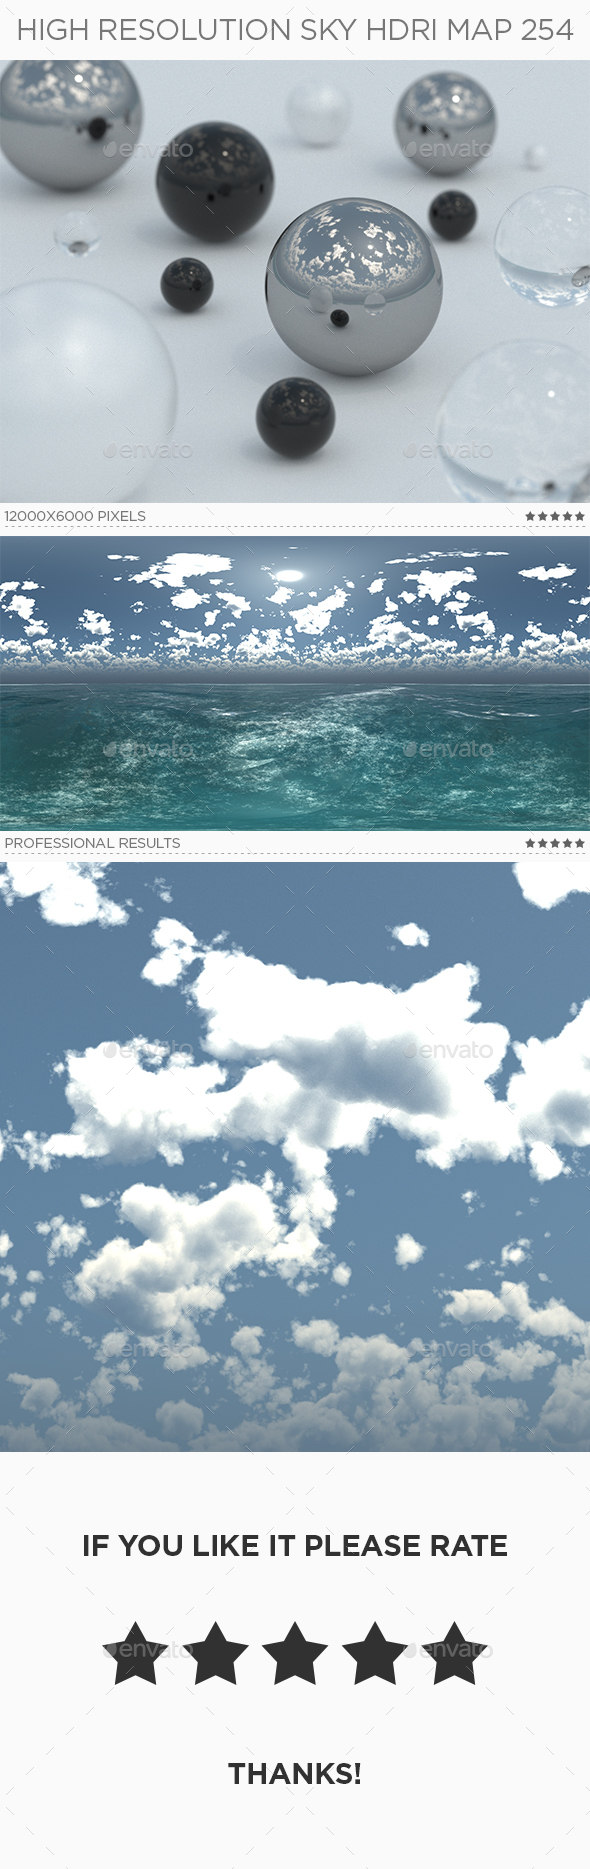 High Resolution Sky HDRi Map 254 - 3DOcean Item for Sale